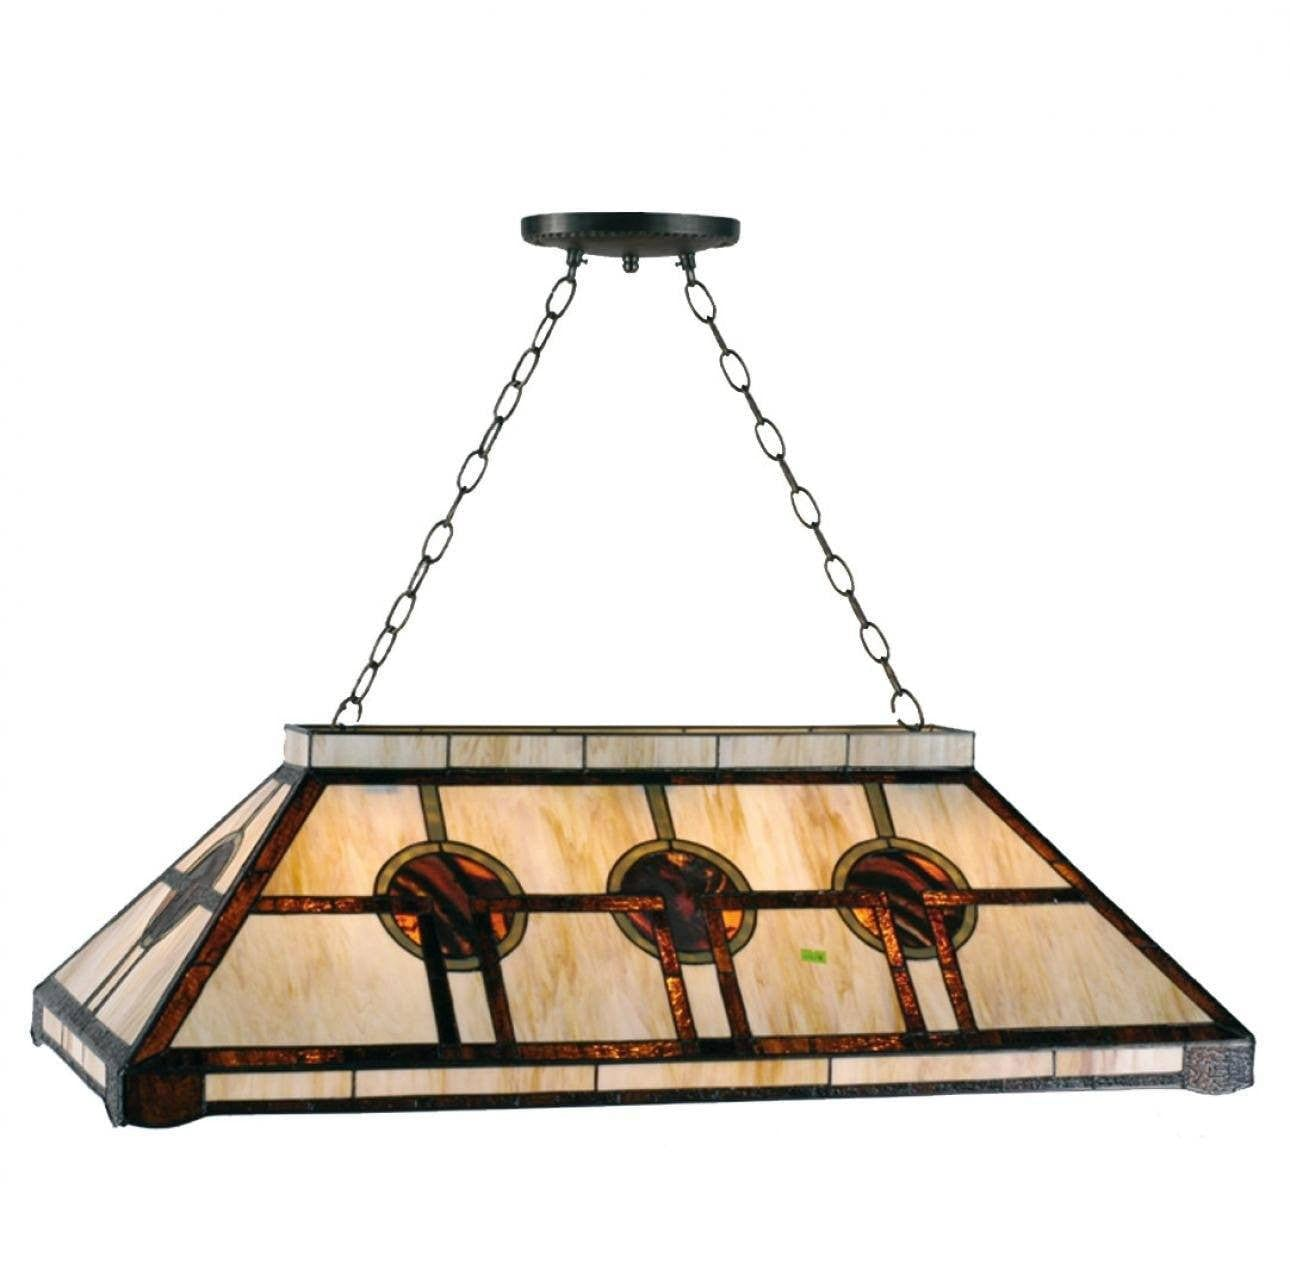 Oxford tiffany pool table light